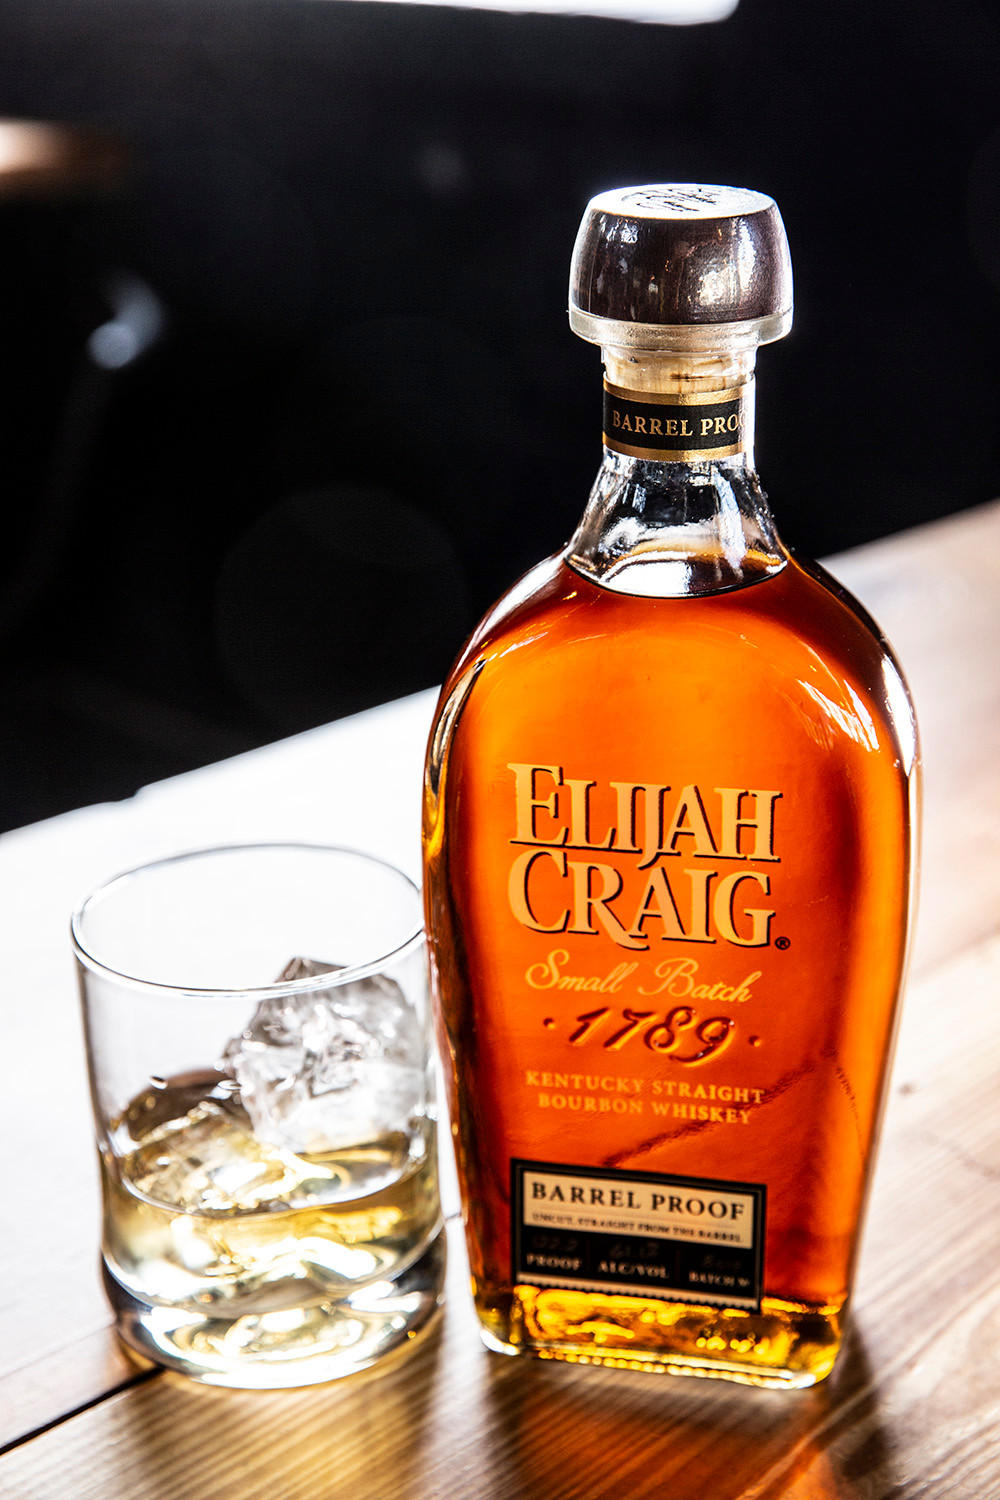 Bottle of Elijah Craig Bourbon next to a glass with bourbon and ice